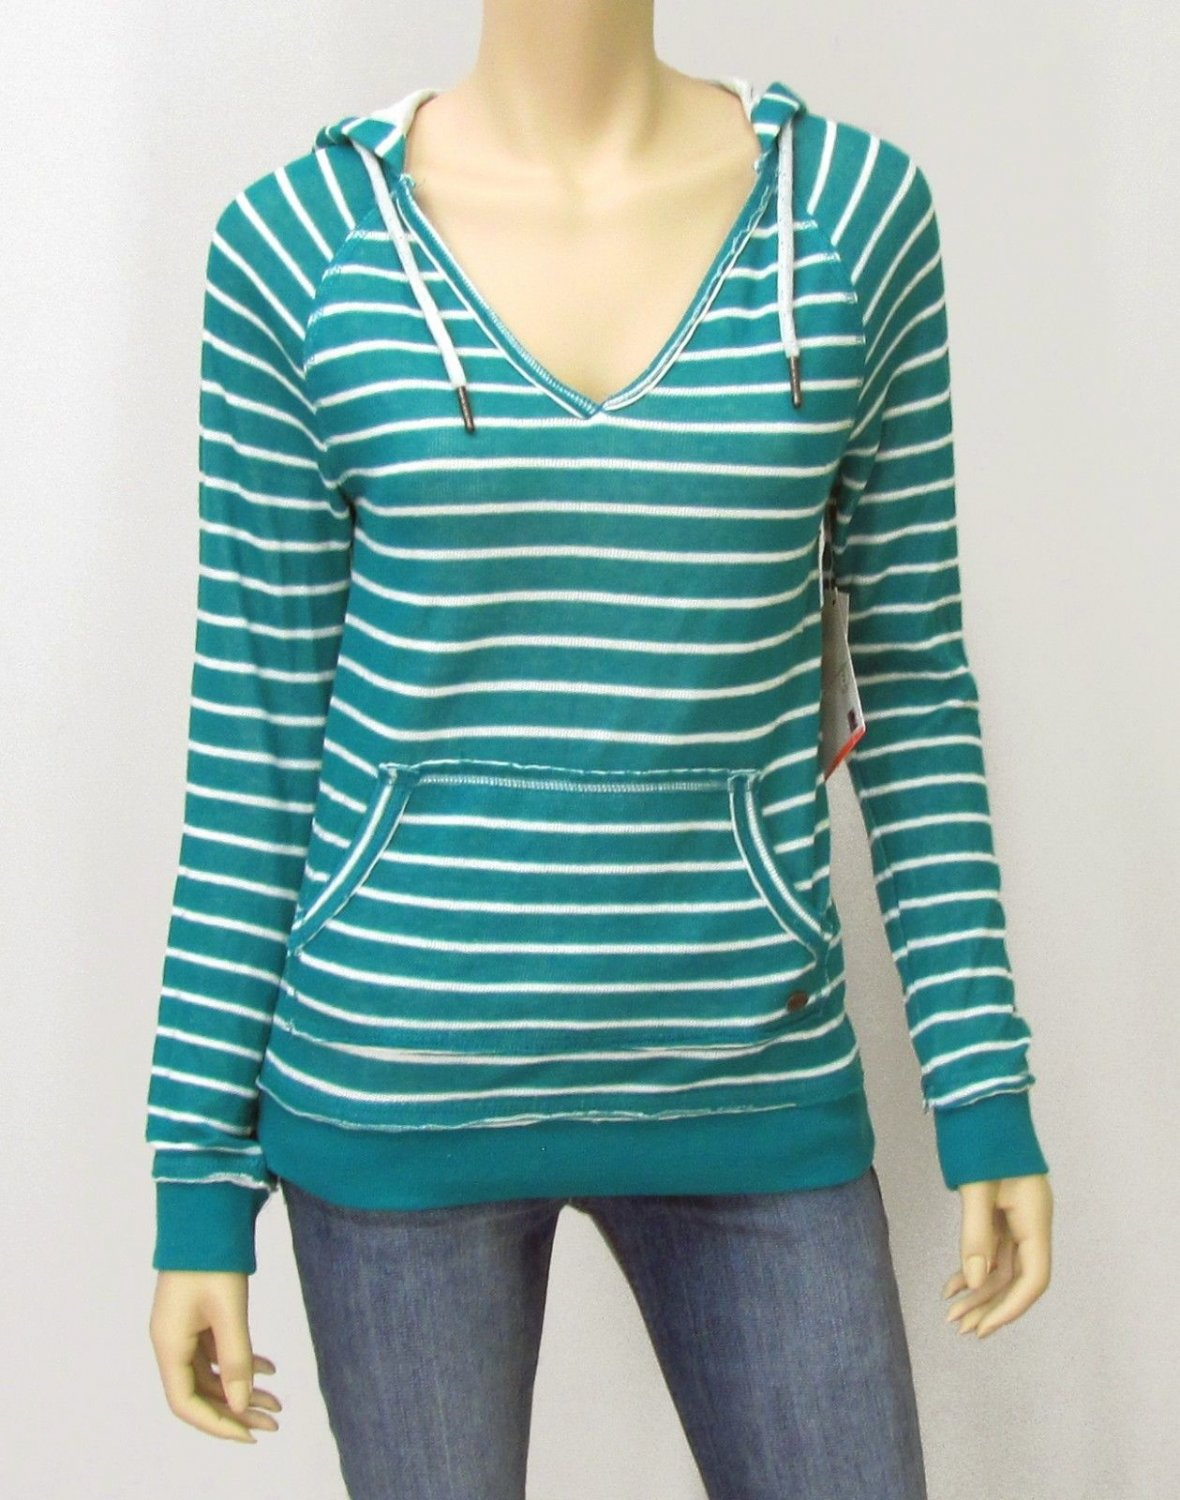 Roxy Juniors S Teal Blue Stripe Sweater Hoodie V-neck Hooded Pullover